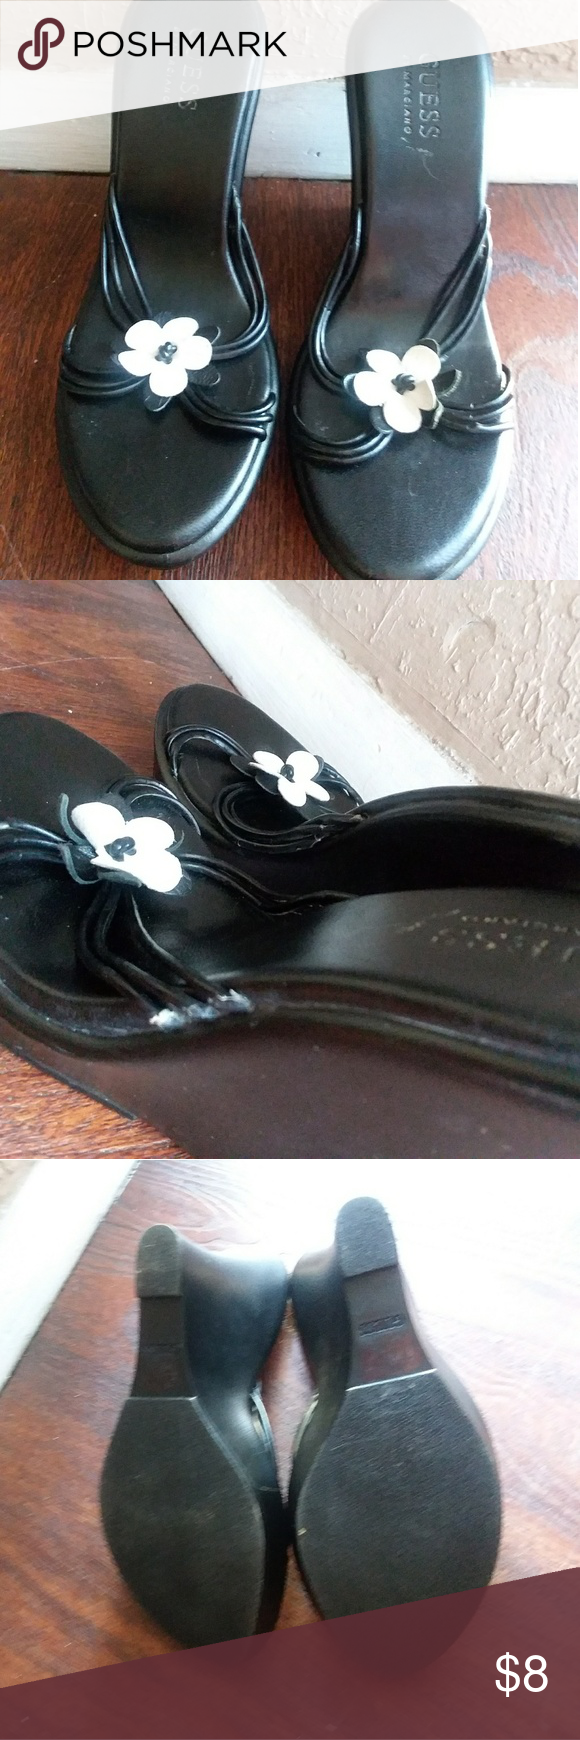 Guess wedge sandals Black guess wedge sandals has thin straps with white flower on top 4 inch wedge does show signs of wear on the sides of straps but not to noticeable and doesn't affect wear other than that good used condition size 5. Please refer to all pictures. Guess by Marciano Shoes Sandals